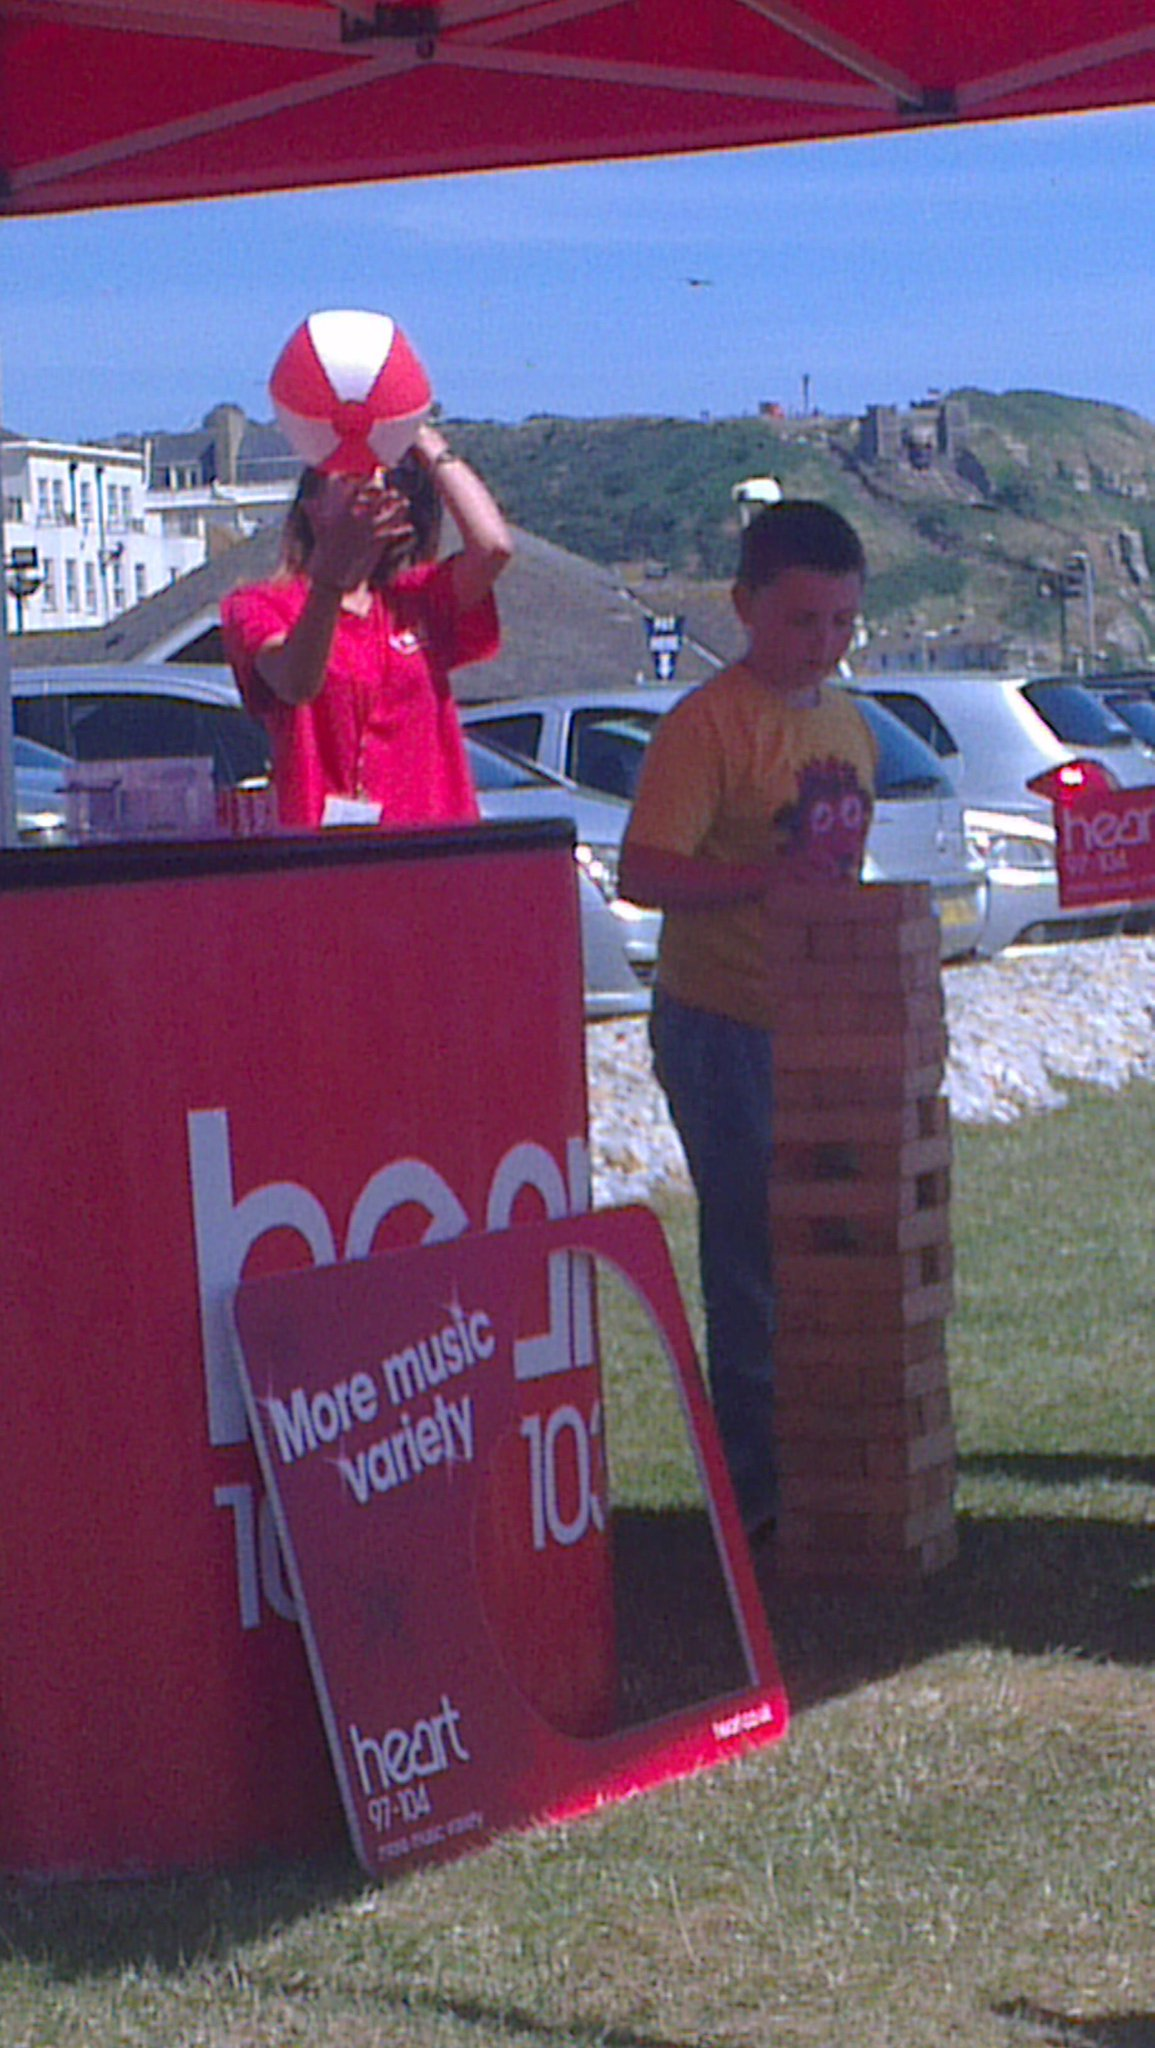 @officialheart my little boy playing jenga at Hastings seafront, lovely weather :) http://t.co/hpeOBKbXRg